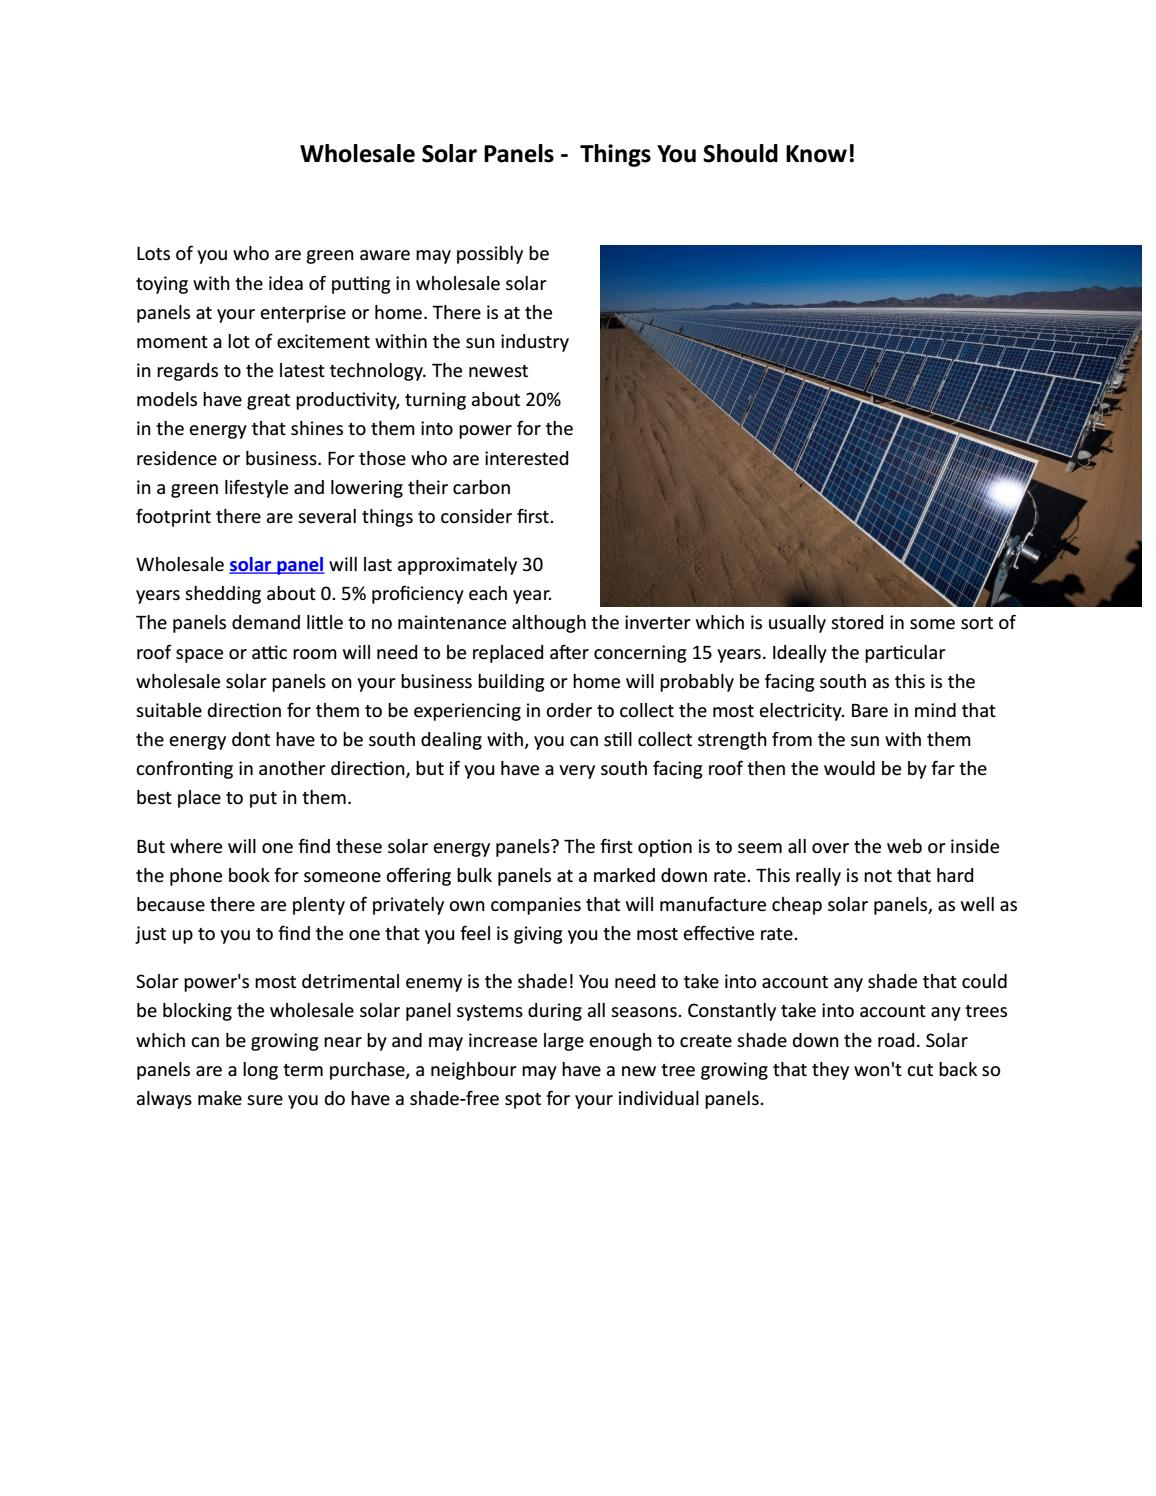 Solar Panels For Your Home >> Wholesale Solar Panels Power To Your Home By Timclow Issuu